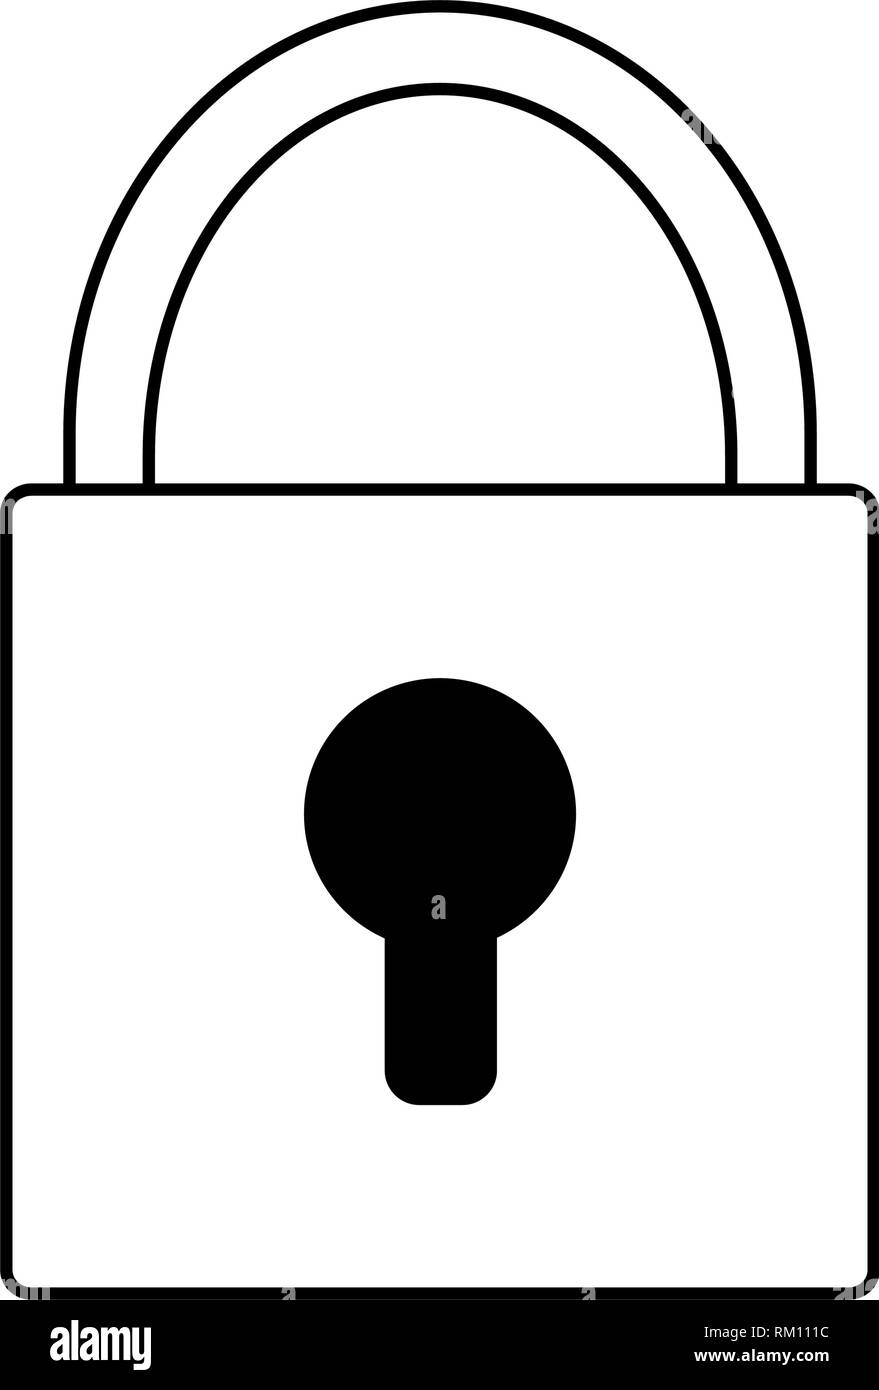 padlock security device symbol in black and white - Stock Image